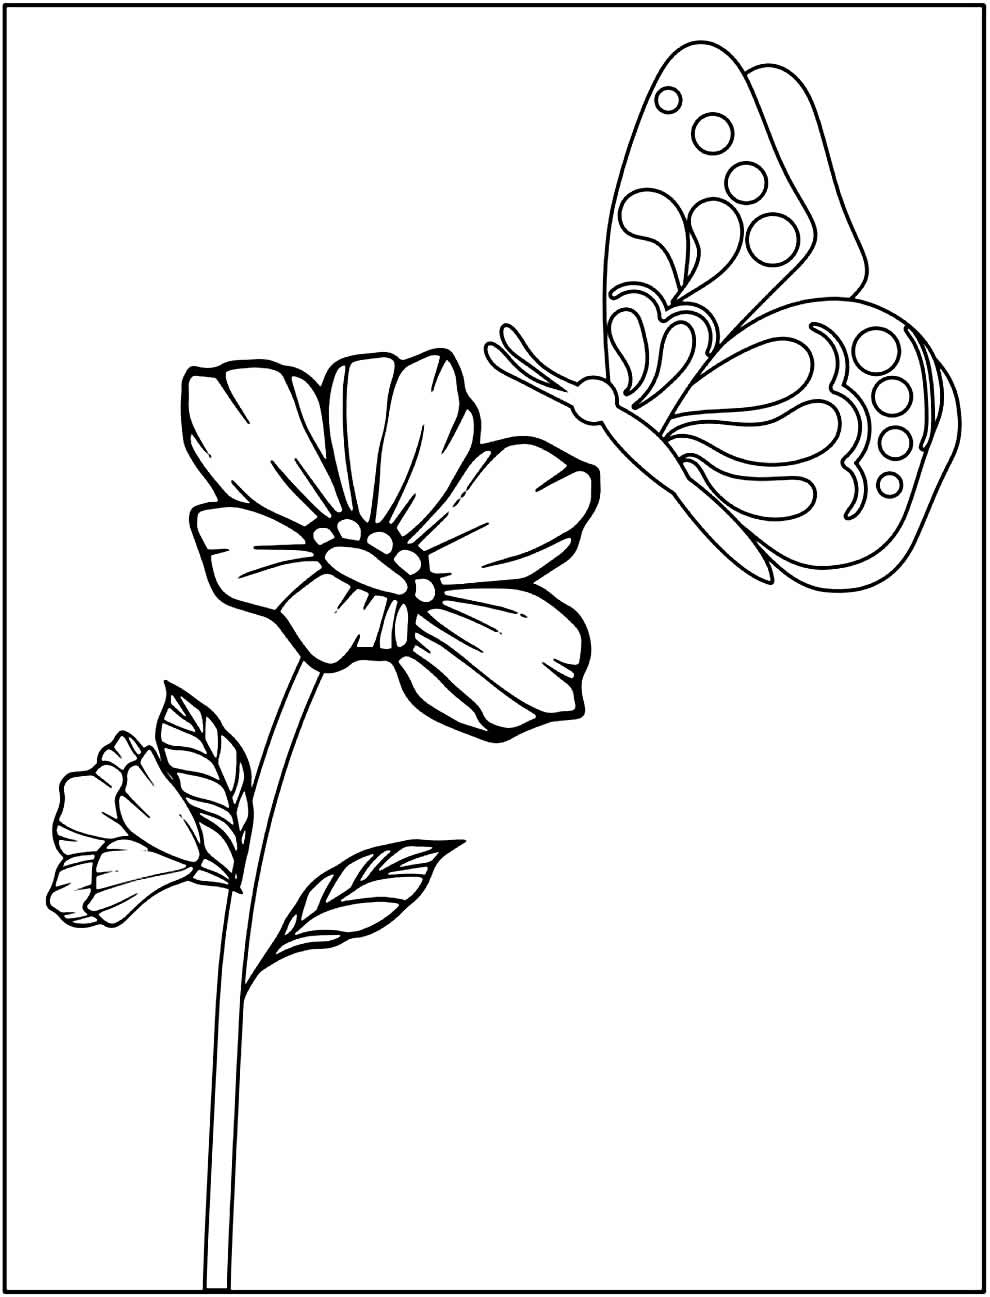 Image of Flowers to color